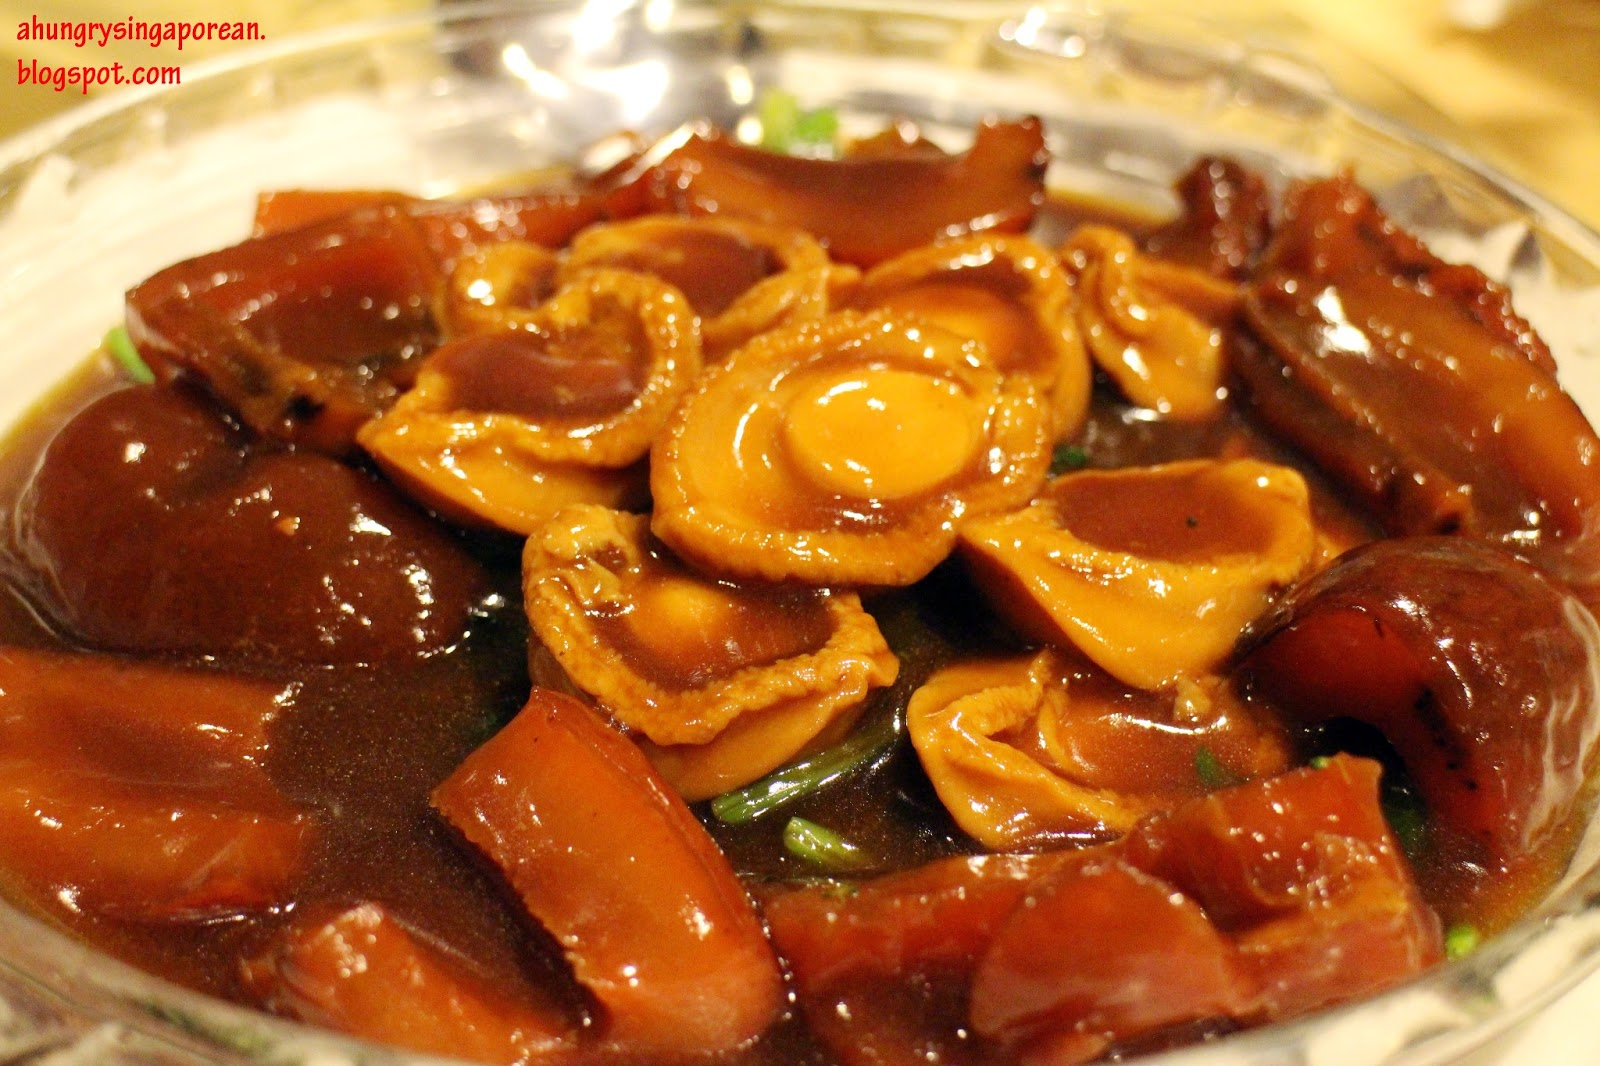 sea cucumbers with braised abalone with sea braised sea cucumber ...